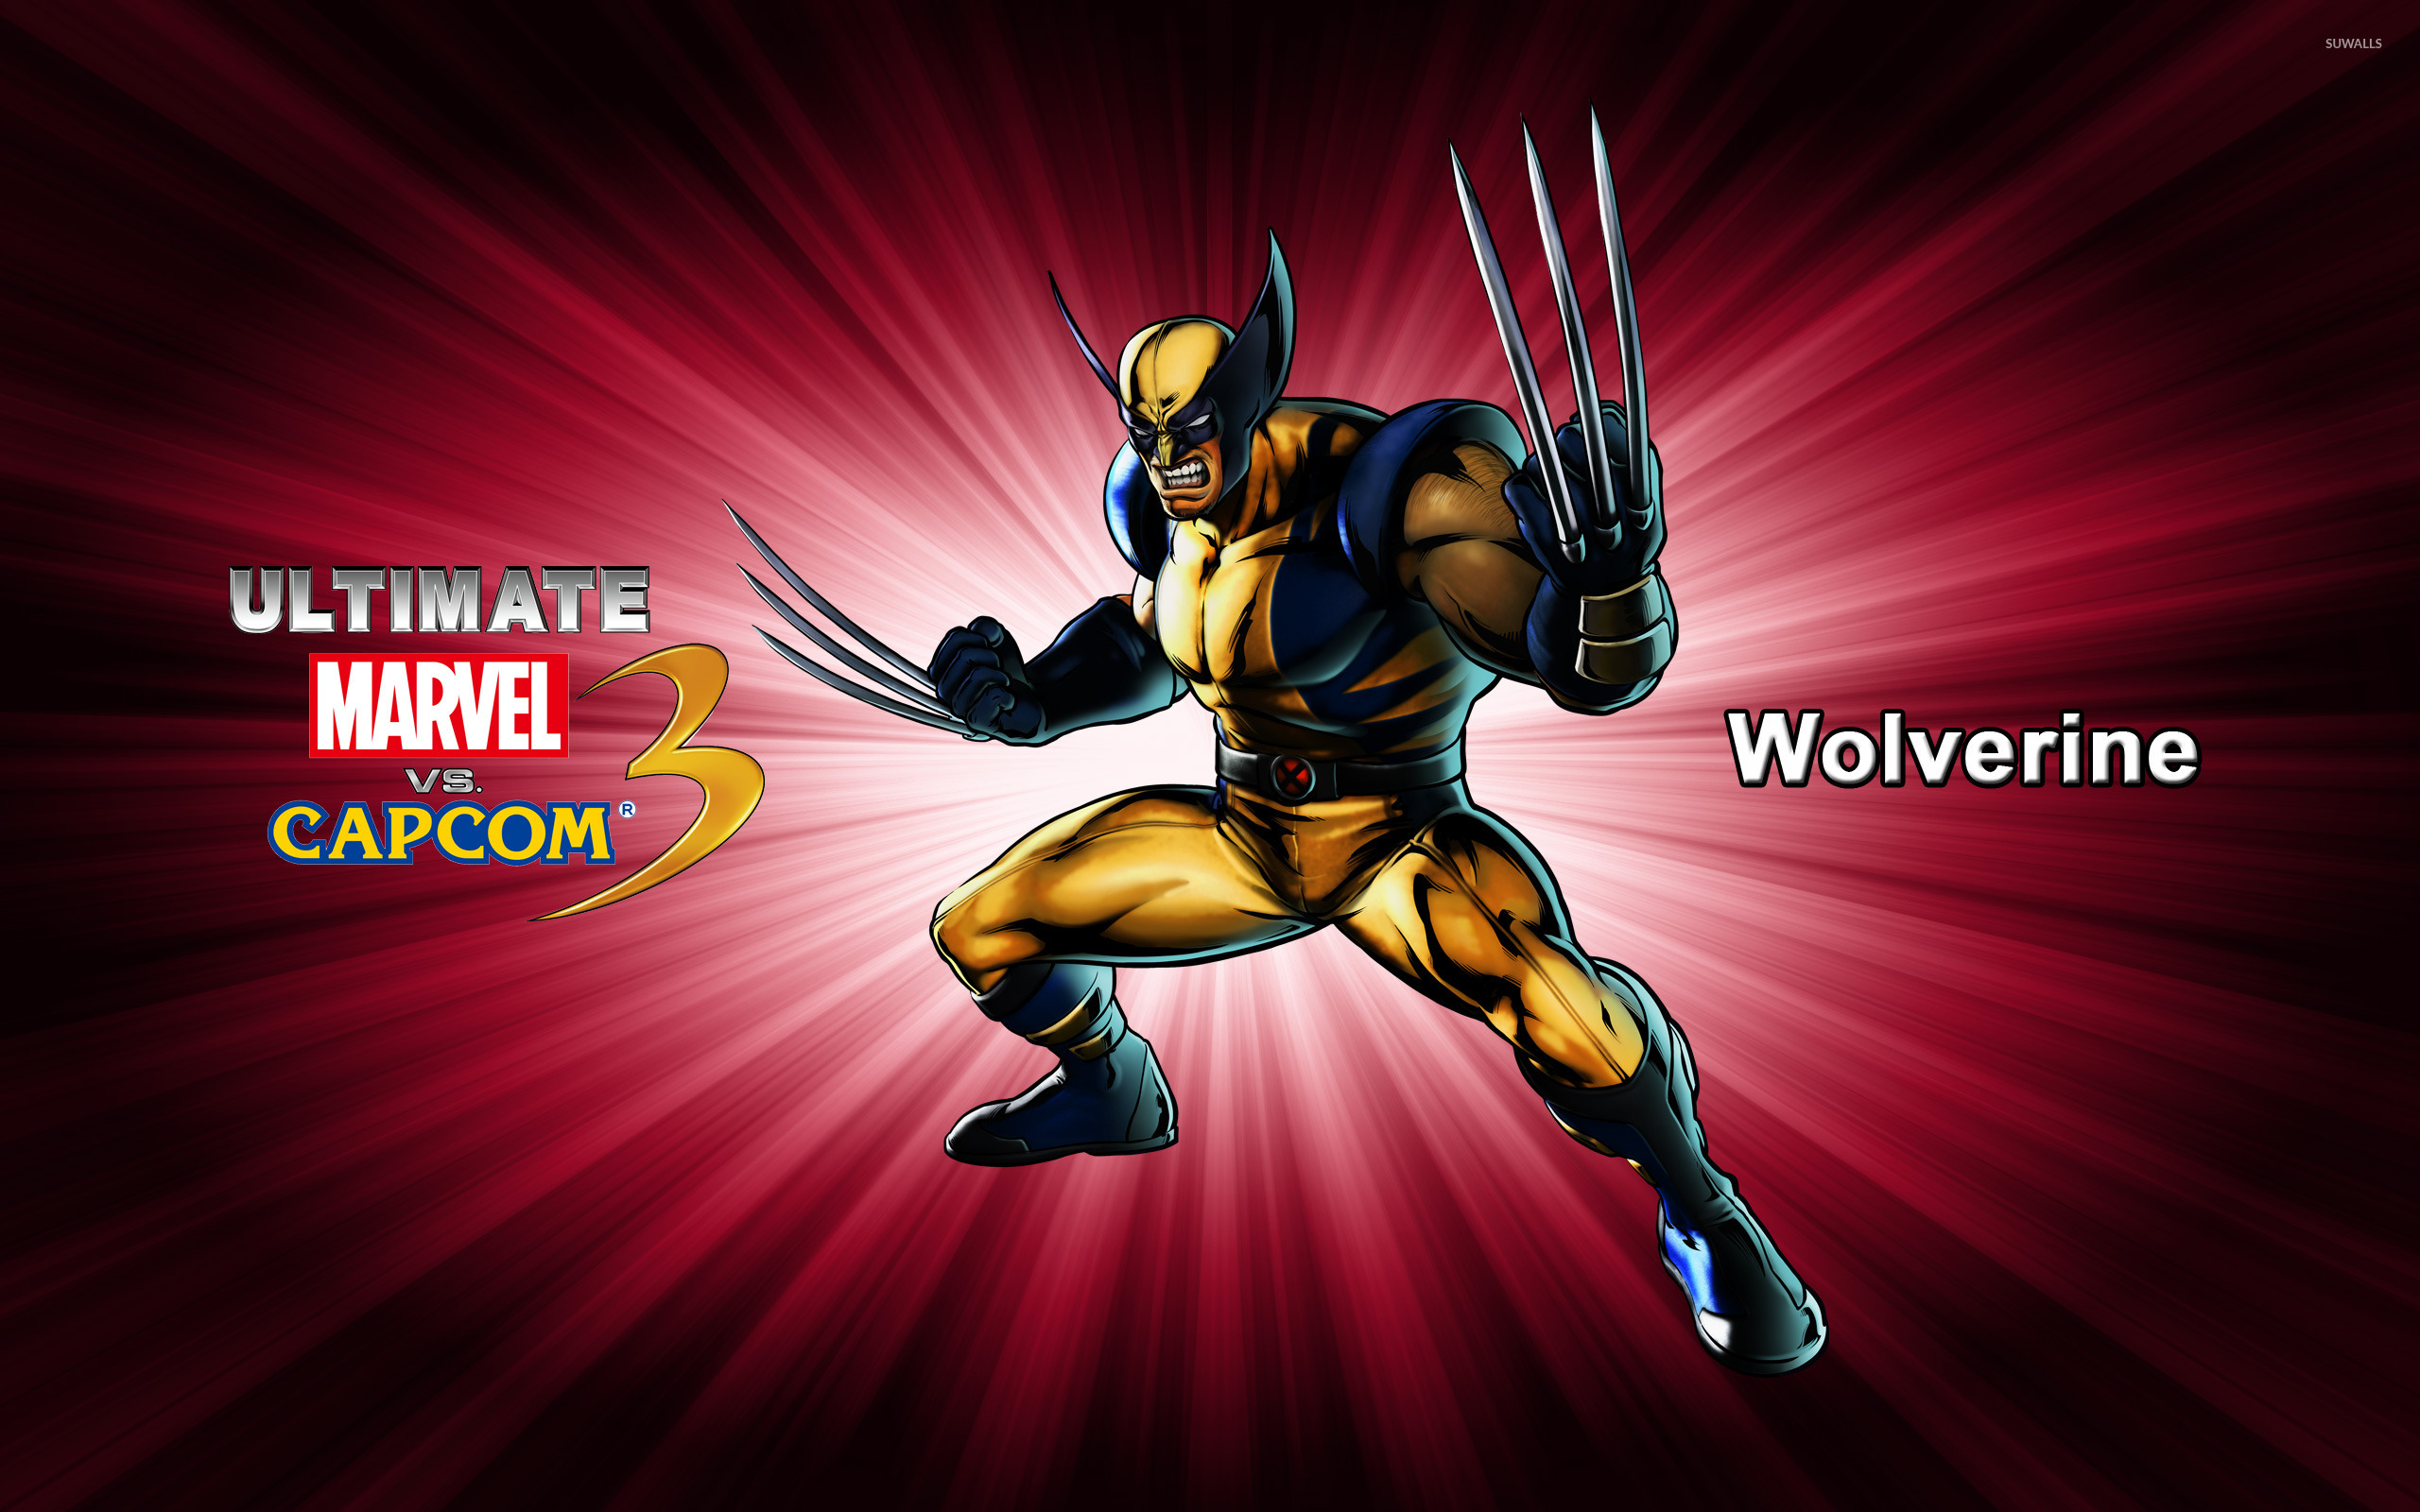 Top Wallpaper Marvel Wolverine - wolverine-ultimate-marvel-vs-capcom-3-12420-2560x1600  2018_96815.jpg